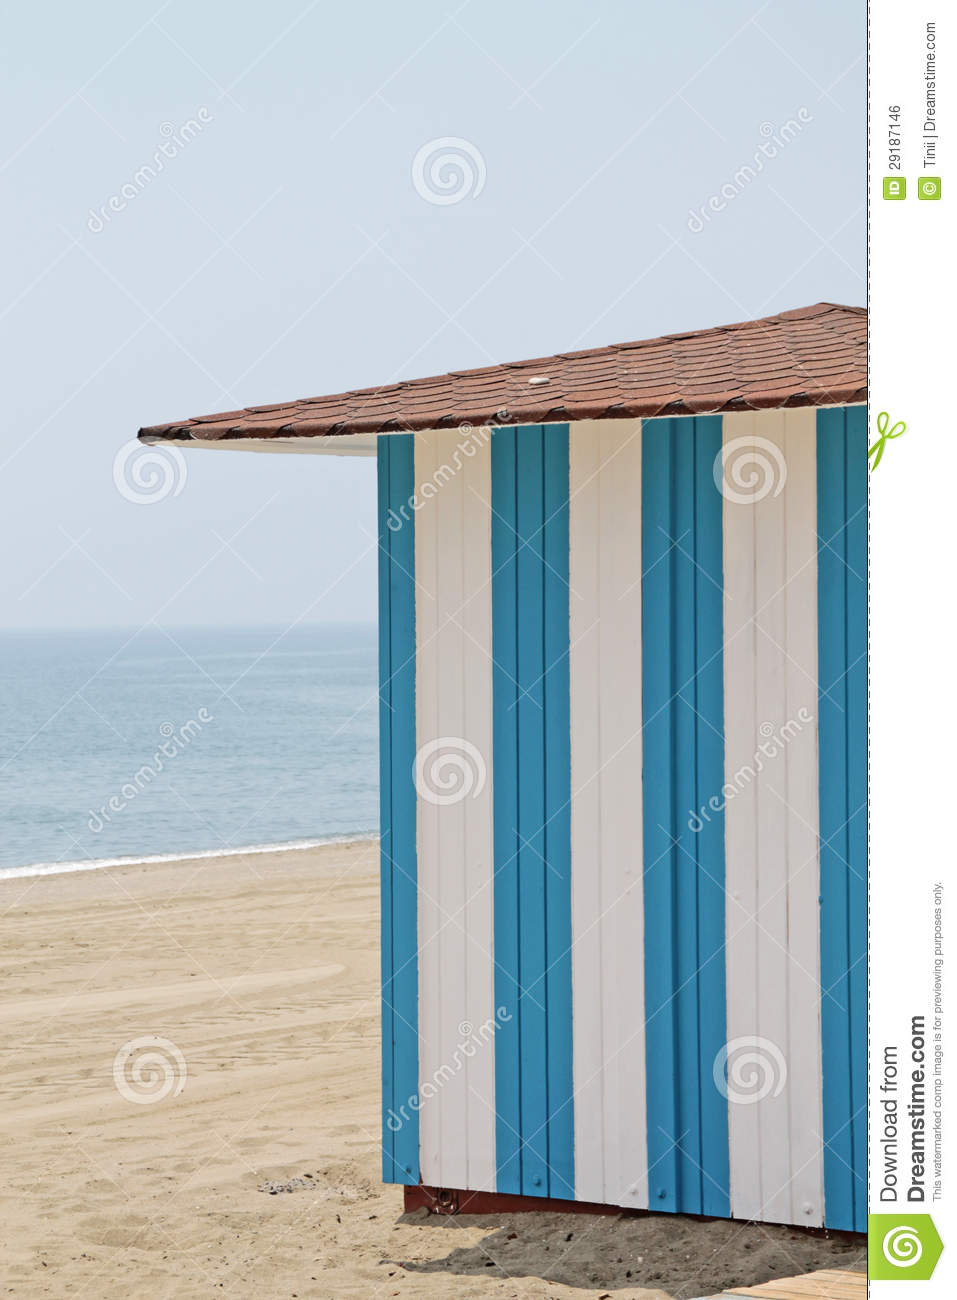 Cabin by the sea royalty free stock image image 29187146 for Cabin by the sea